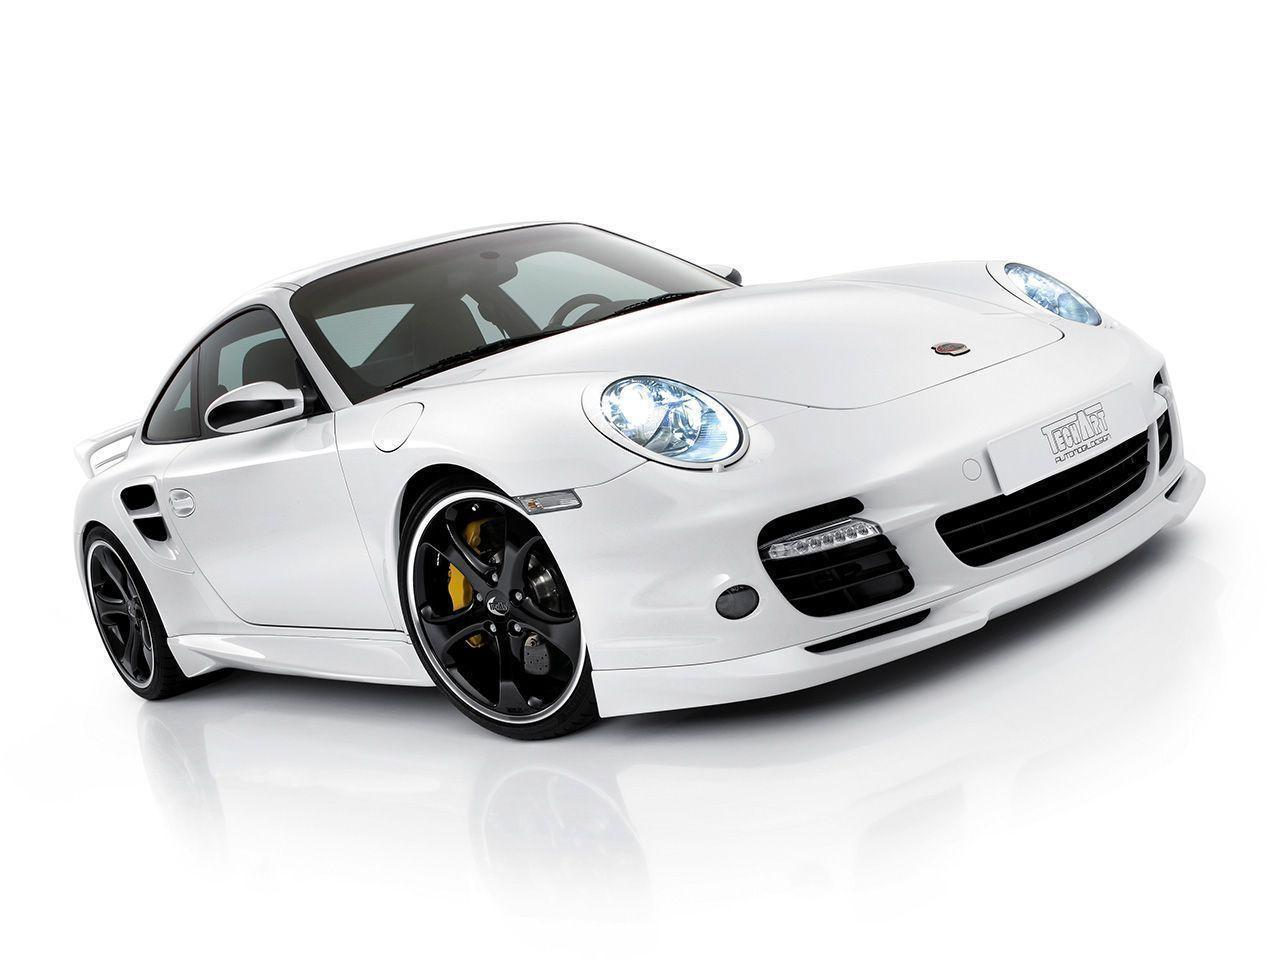 Porsche 911 Cool Cars Wallpaper - car wallpapers